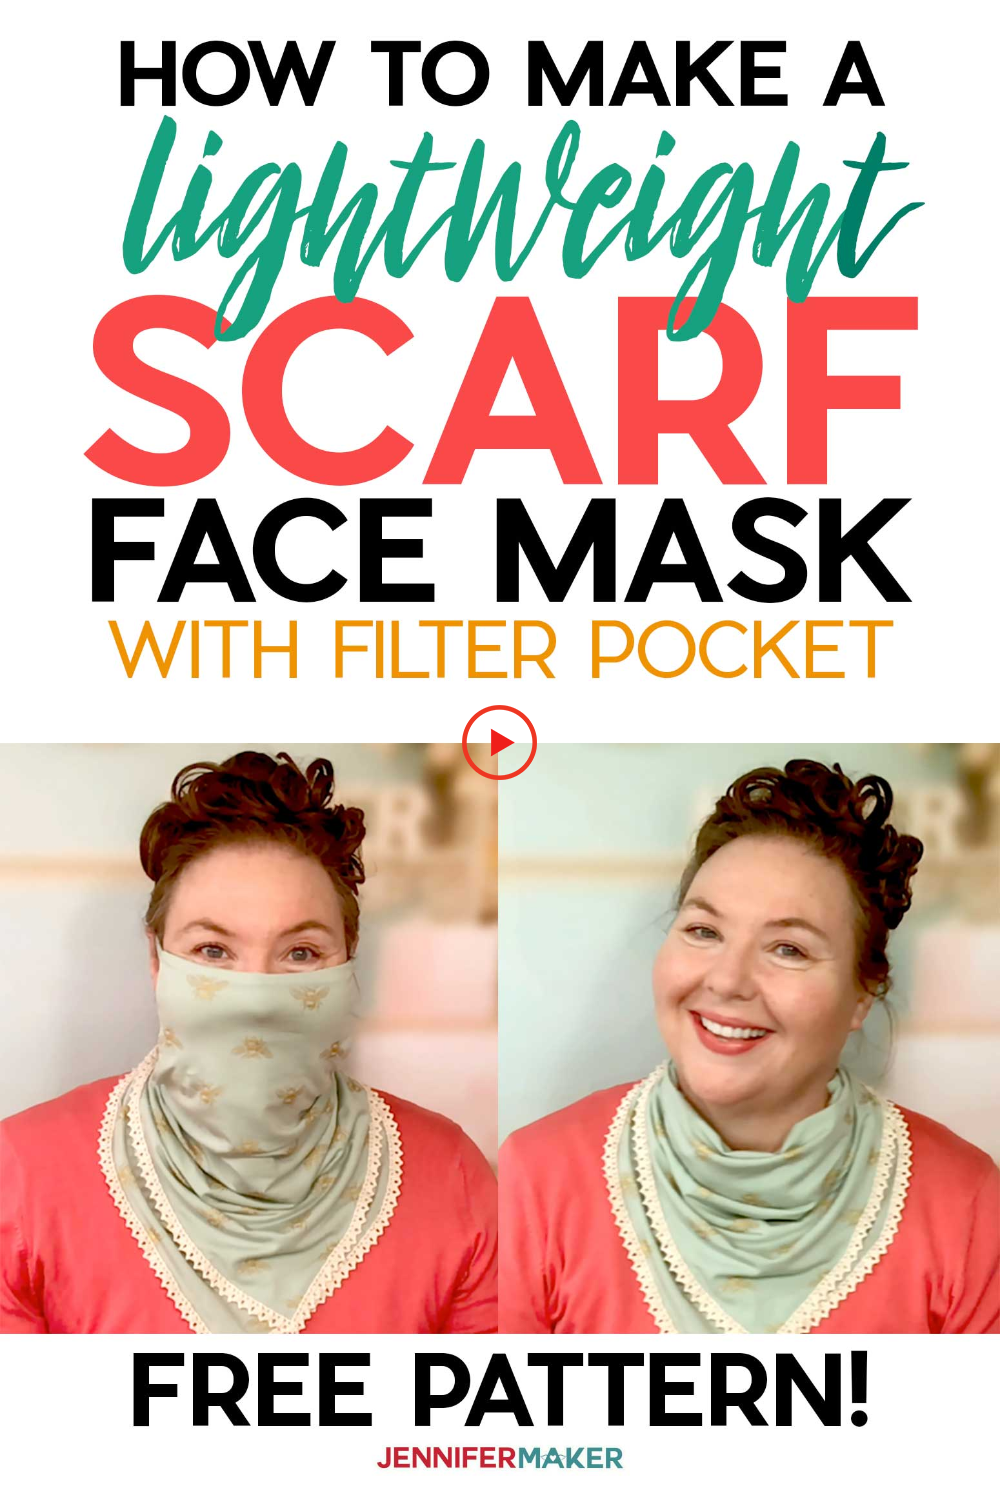 Scarf Face Mask Pattern Pretty & Stylish! Jennifer